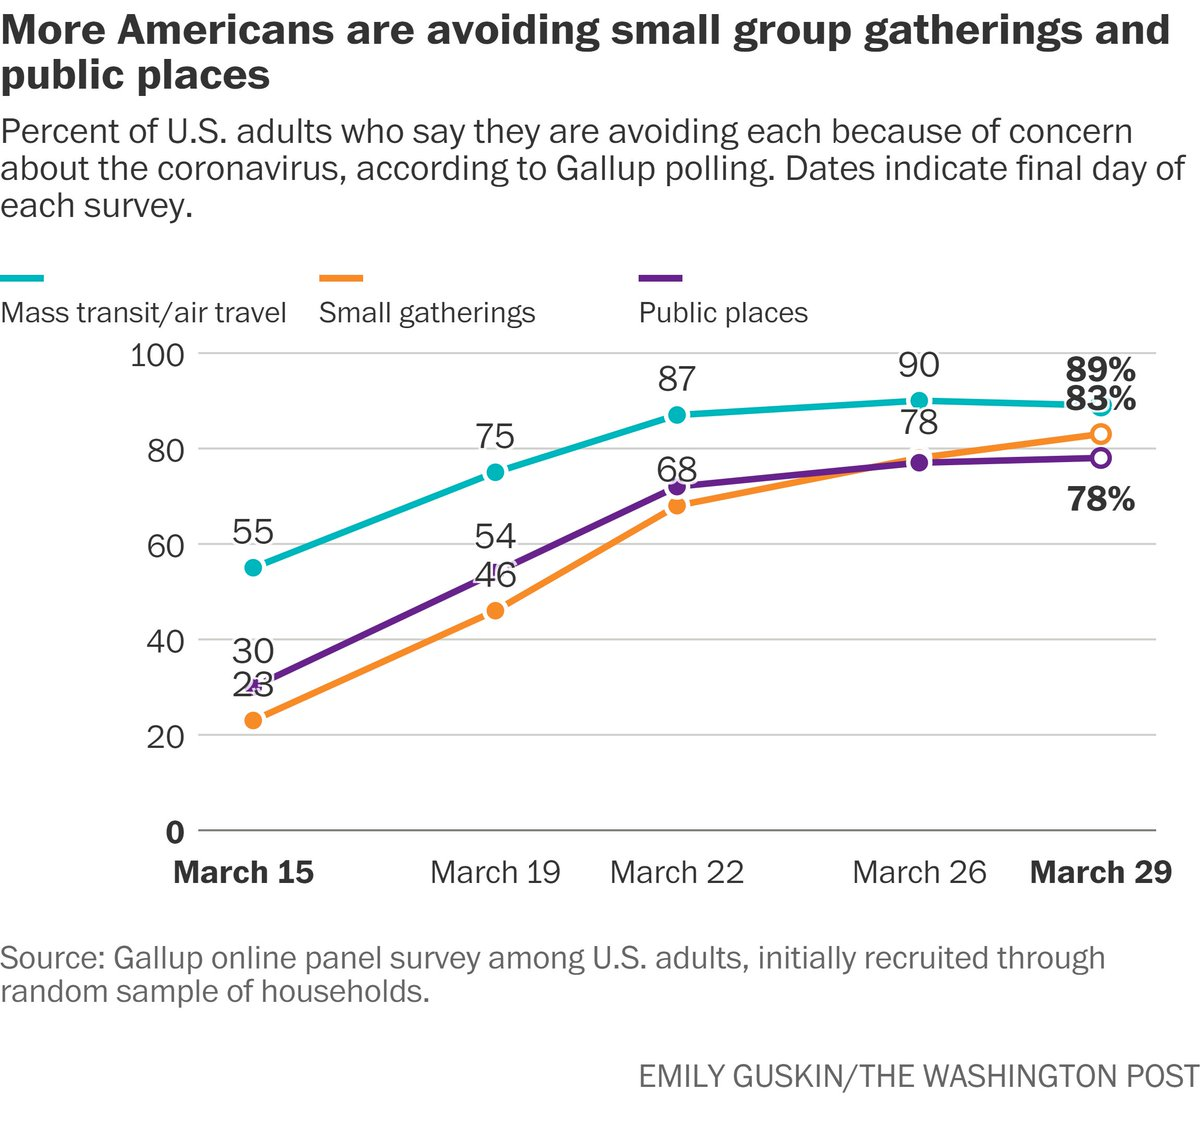 Americans have rapidly adopted social distancing practices, @GallupNews poll finds.